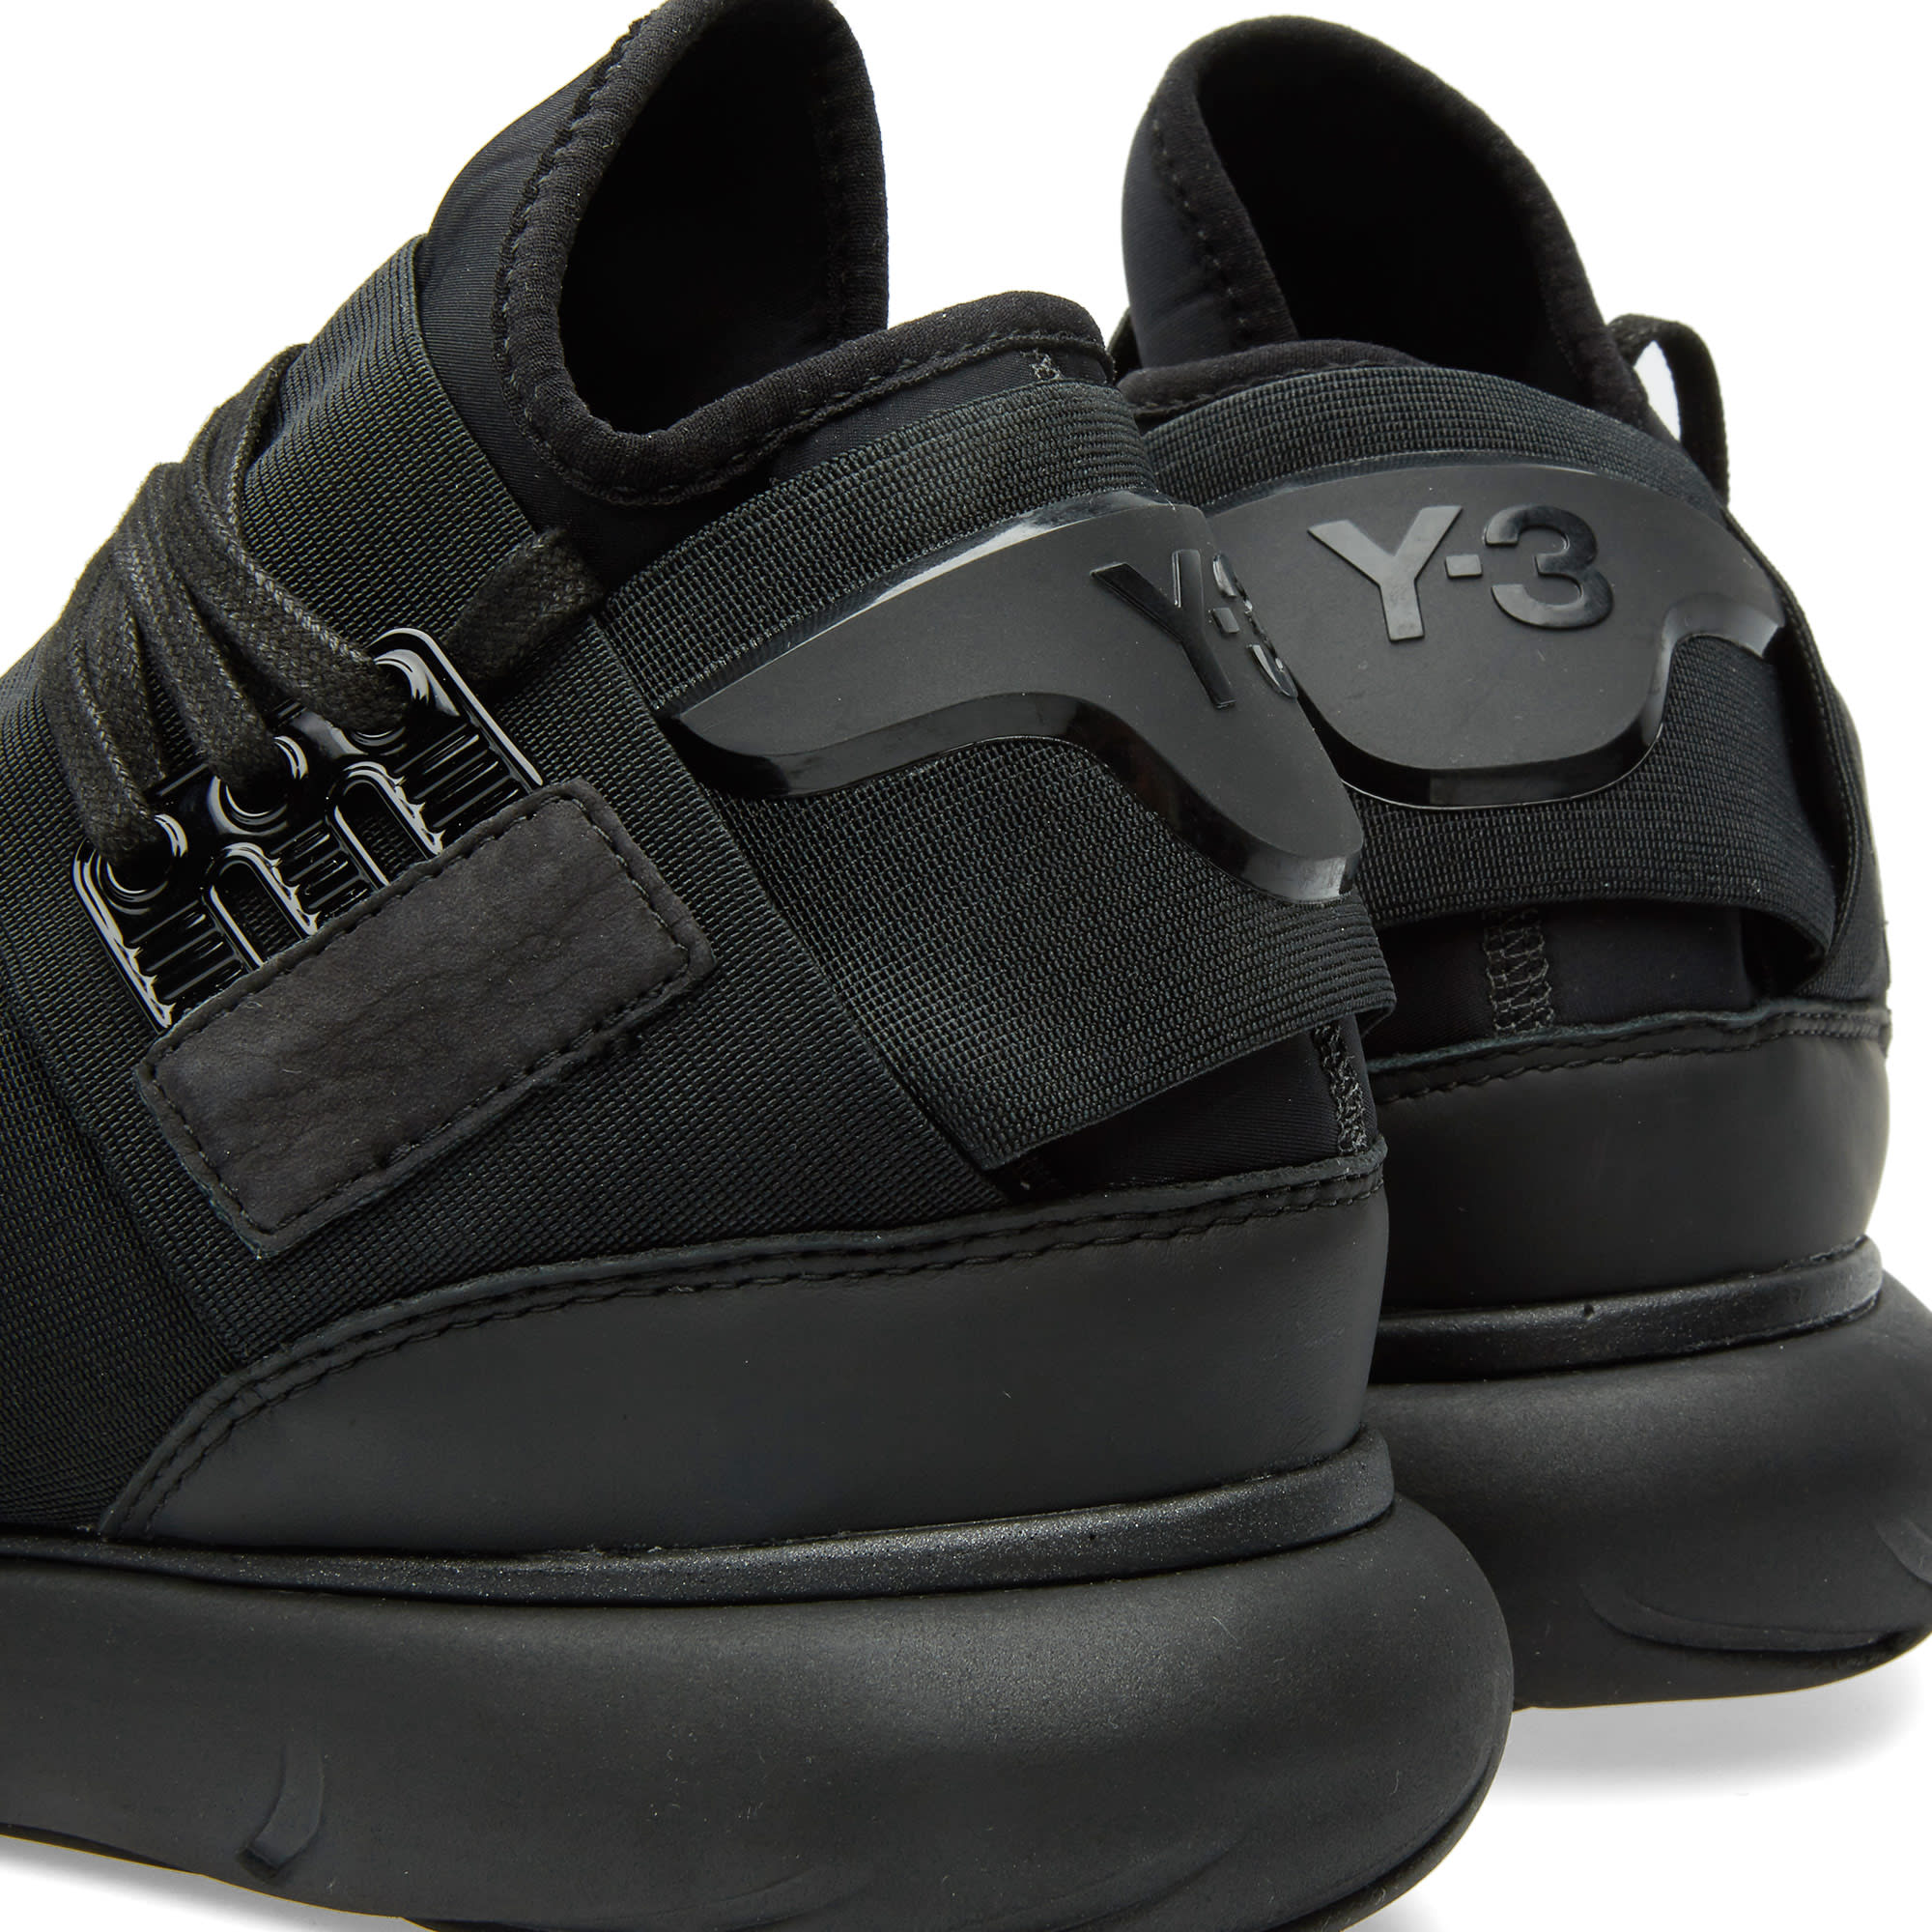 0a574bd100901 Y-3 Qasa High Black